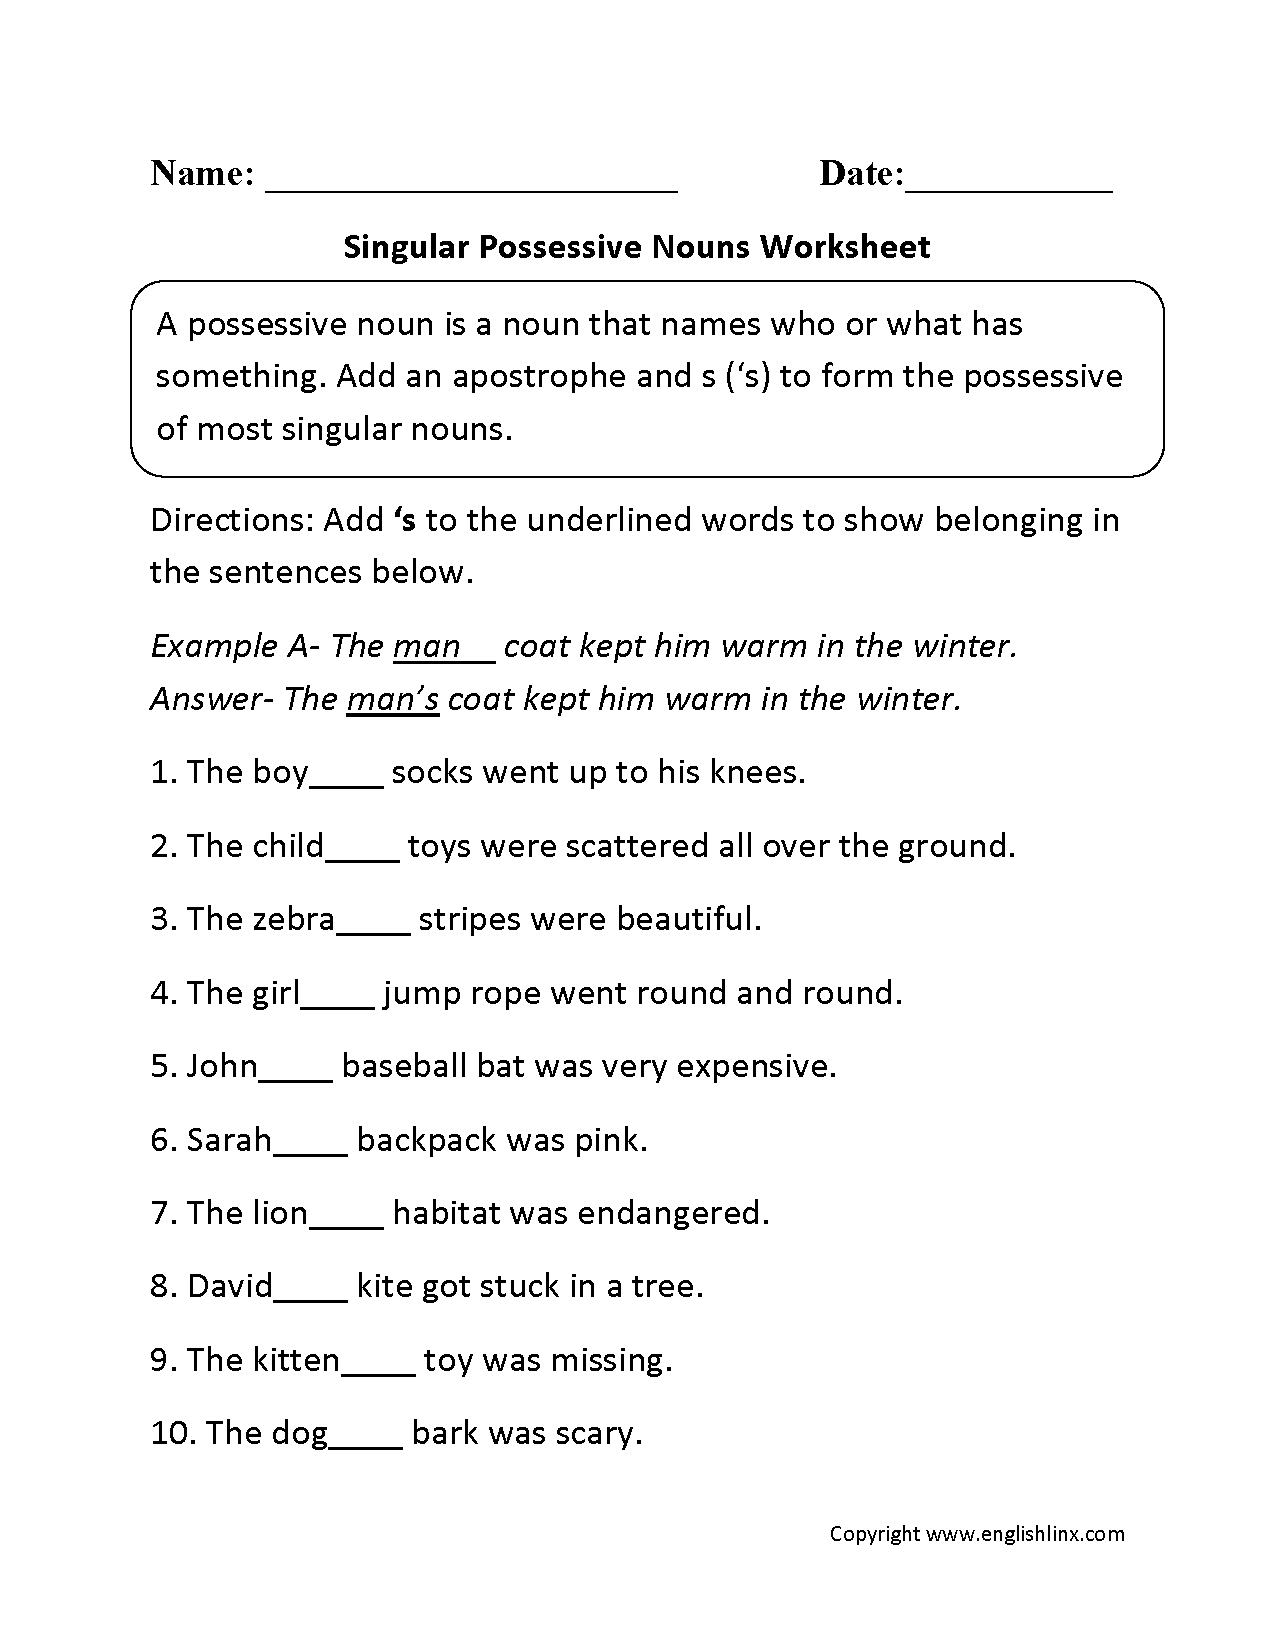 Worksheets Plural Possessive Nouns Worksheets nouns worksheets possessive worksheets